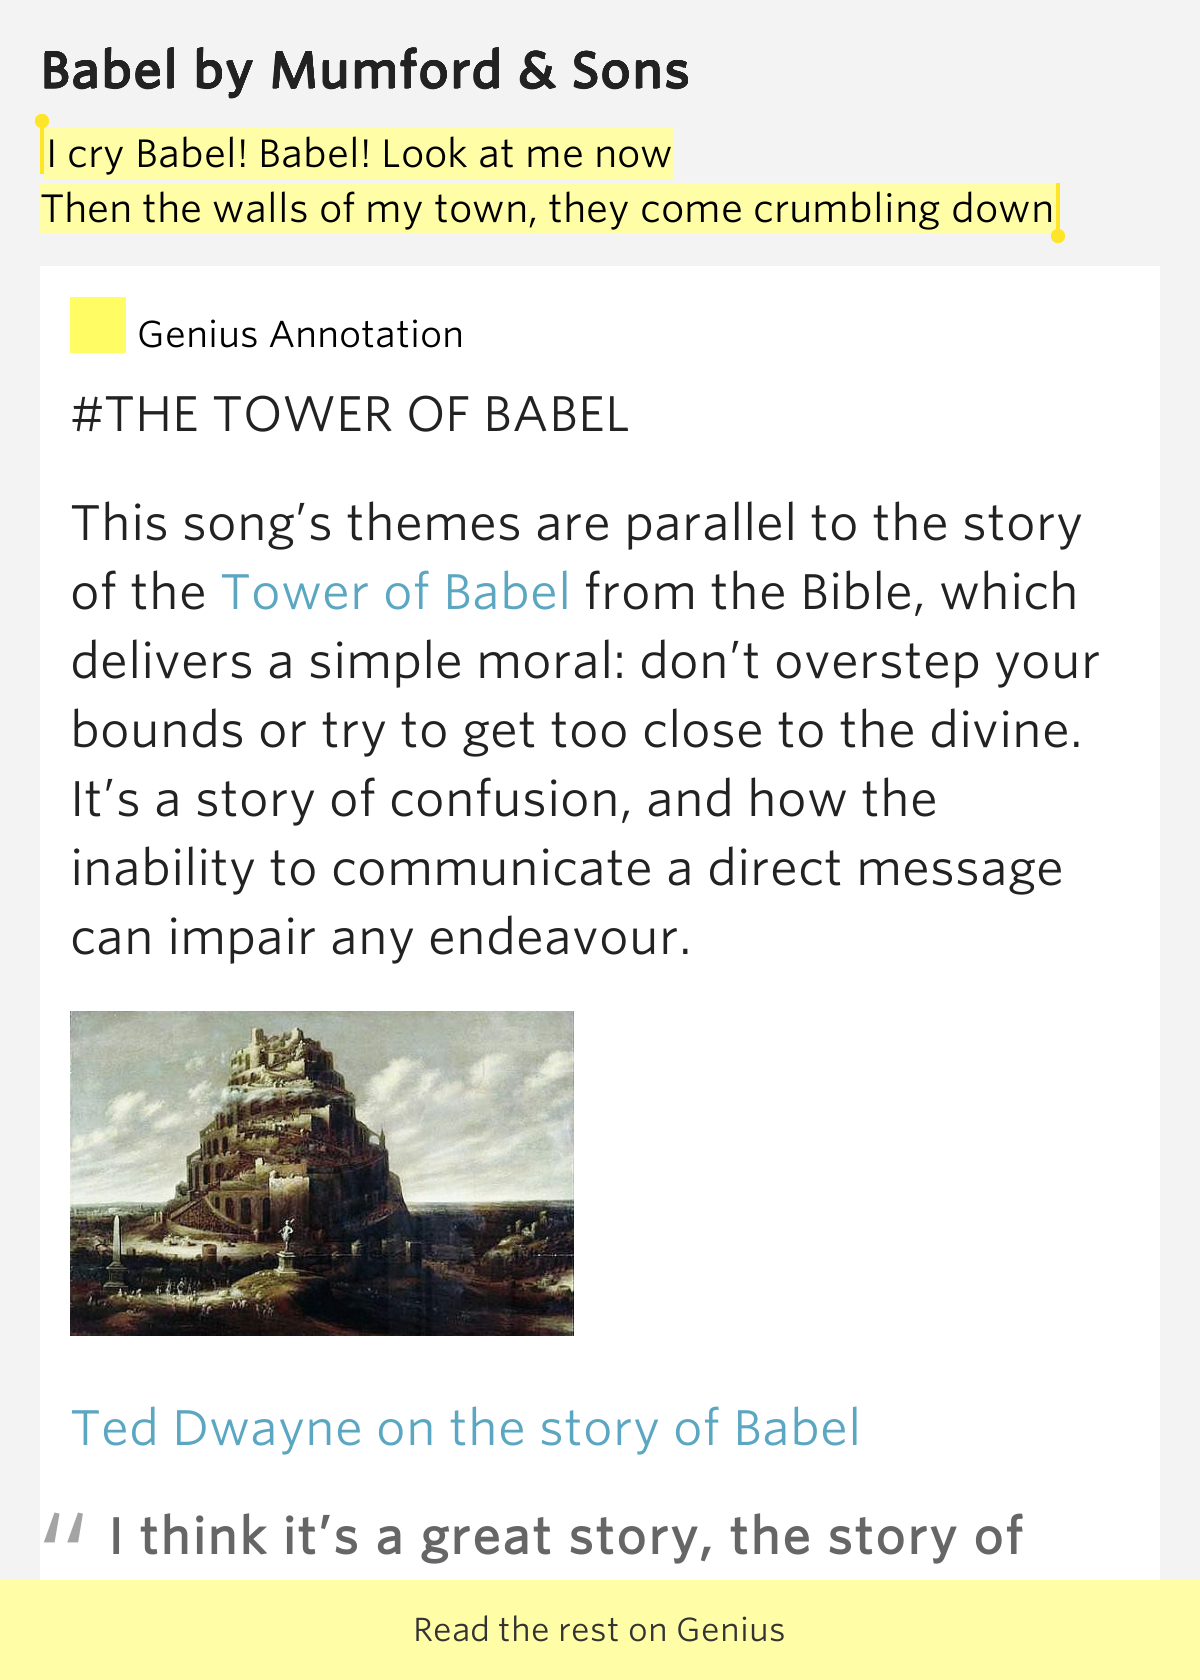 I cry Babel! Babel! Look at me now / Then the walls of my ...